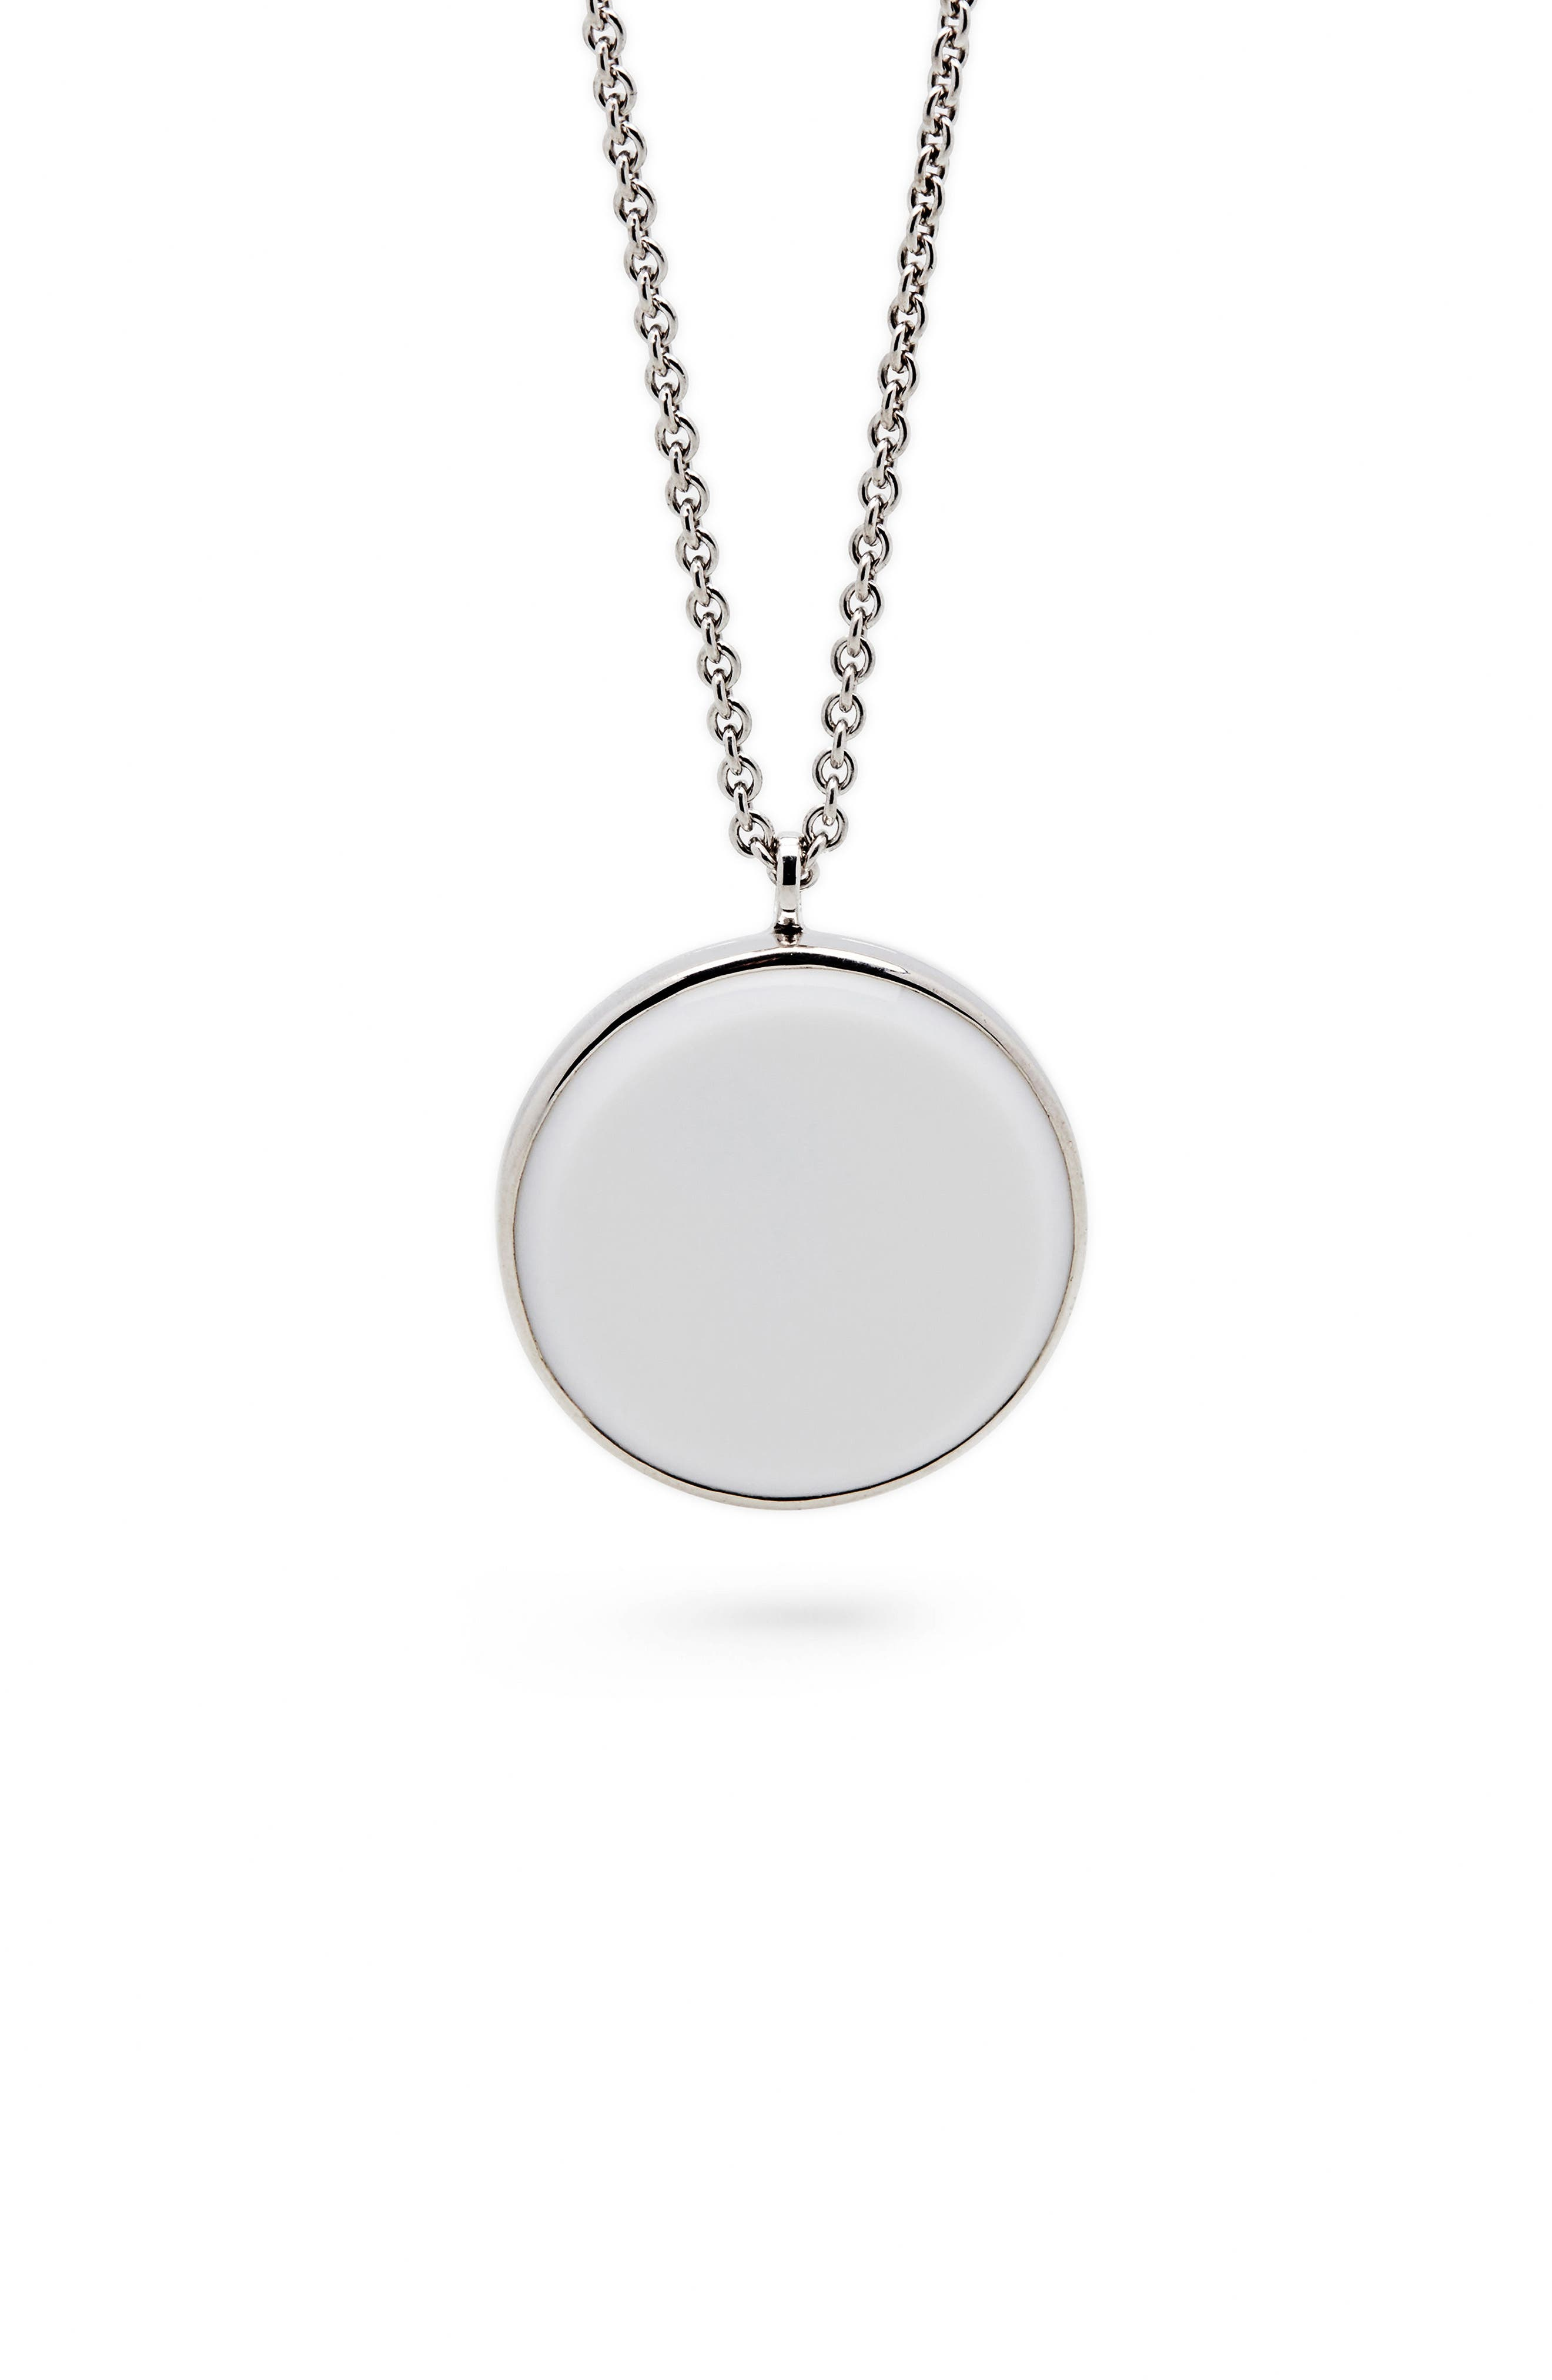 White Agate Medallion Necklace,                         Main,                         color, 925 Sterling Silver